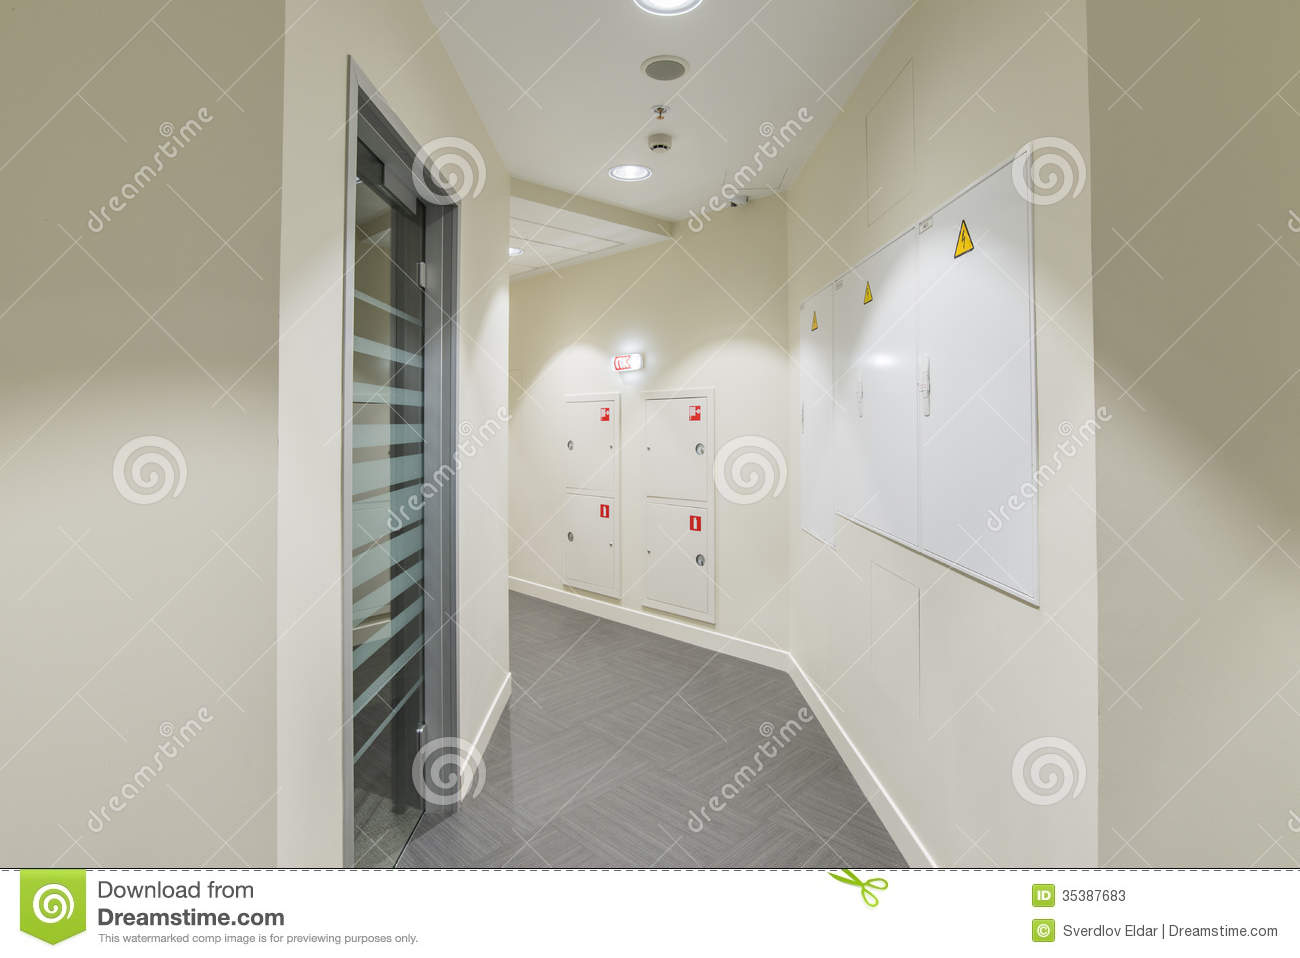 hight resolution of corridor with light colored walls glass dorr and fire box fuse box